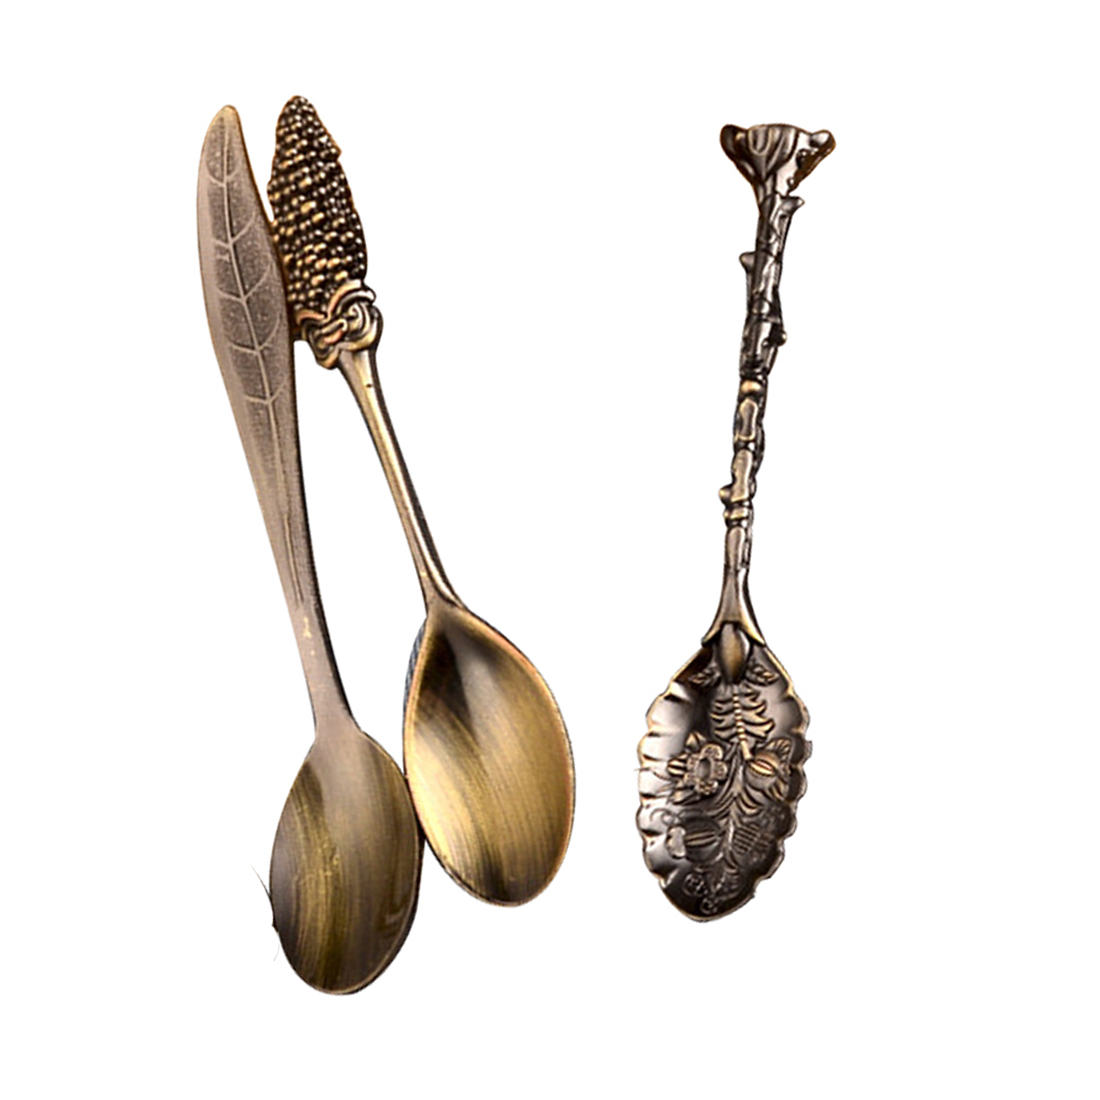 US $3.52 18% OFF|cozinha 6pcs/set Vintage Royal Style Bronze Carved Small  Coffee Tools Tableware and Forks kitchen Accessories-in Dinnerware Sets  from ...